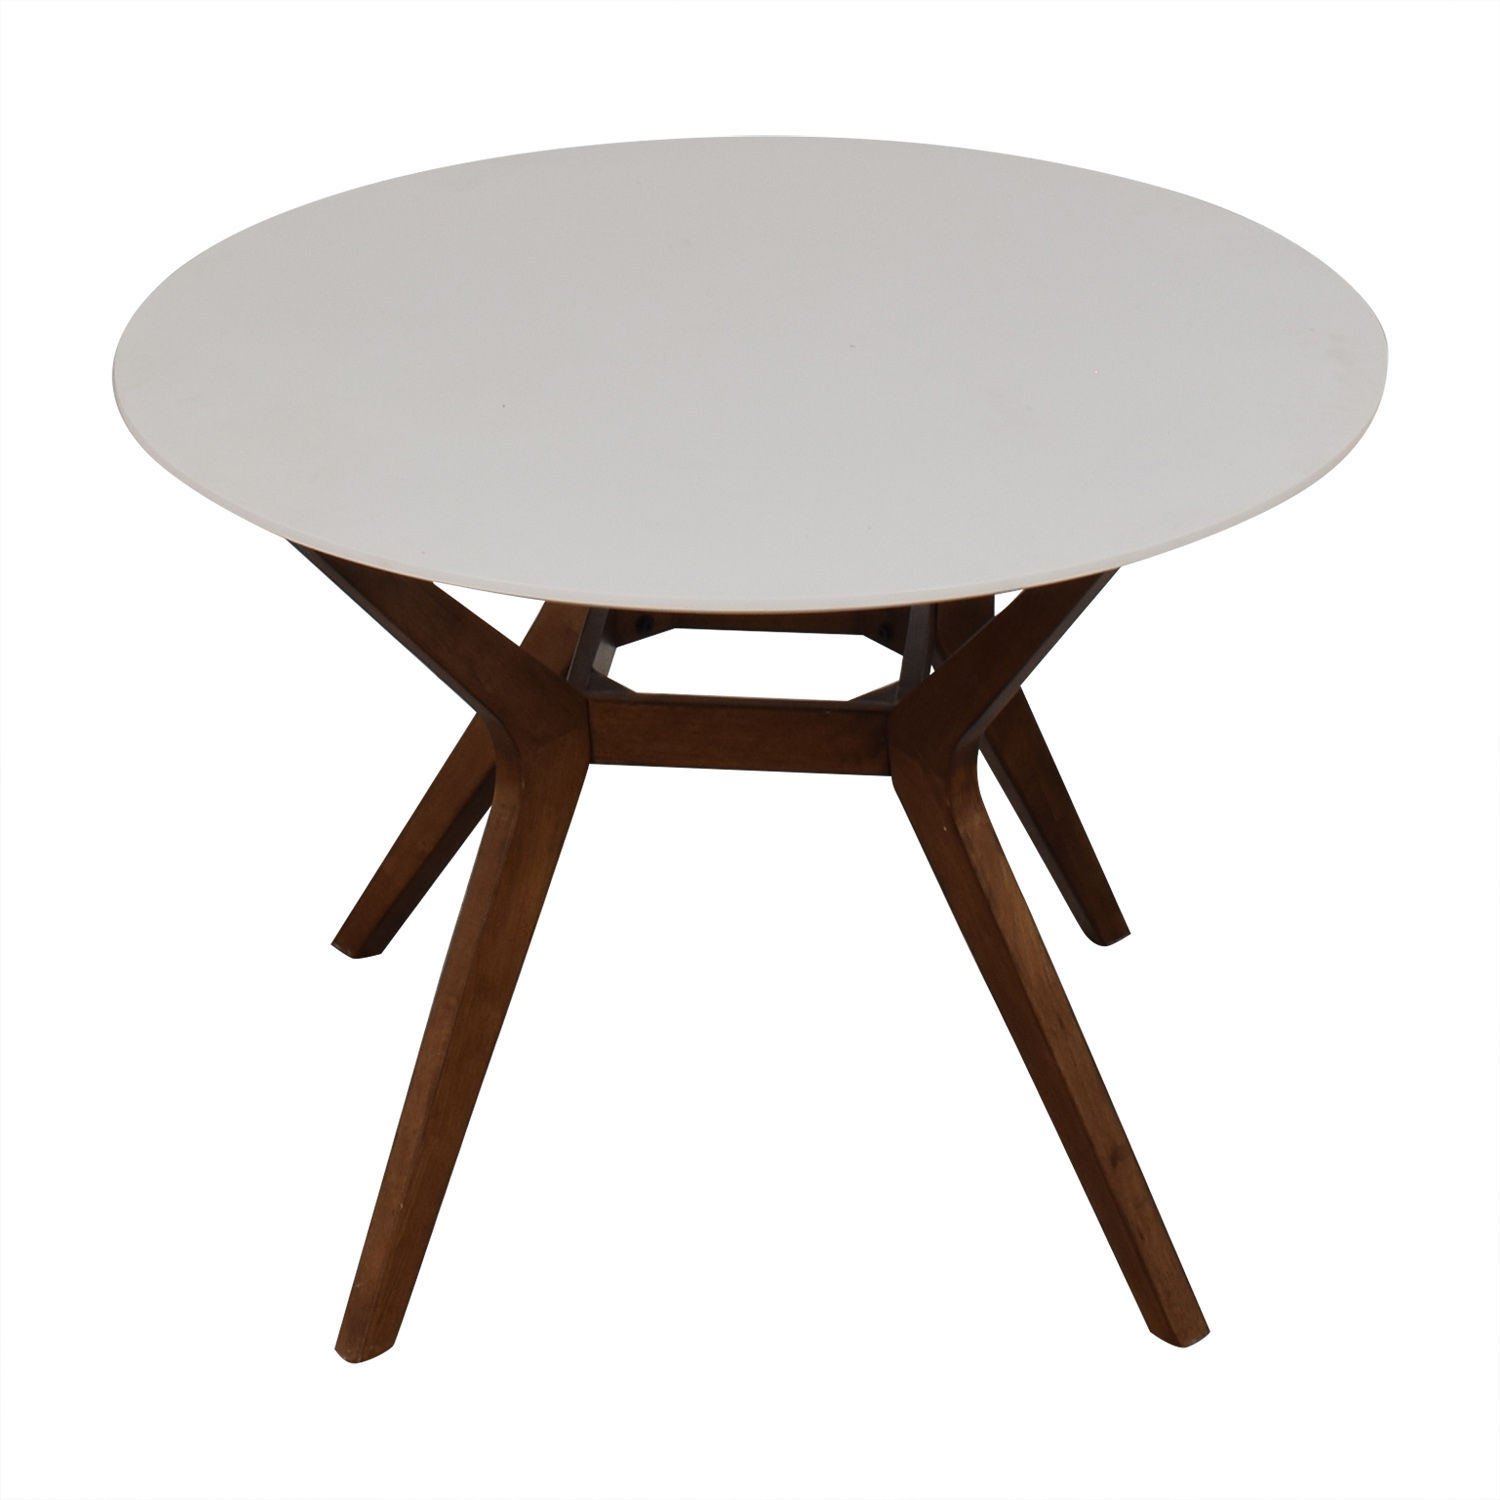 off ikea billsta pub table tables white wooden dining used walnut one drawer accent project target round metal occasional with drawers black oval coffee outdoor shelf modern